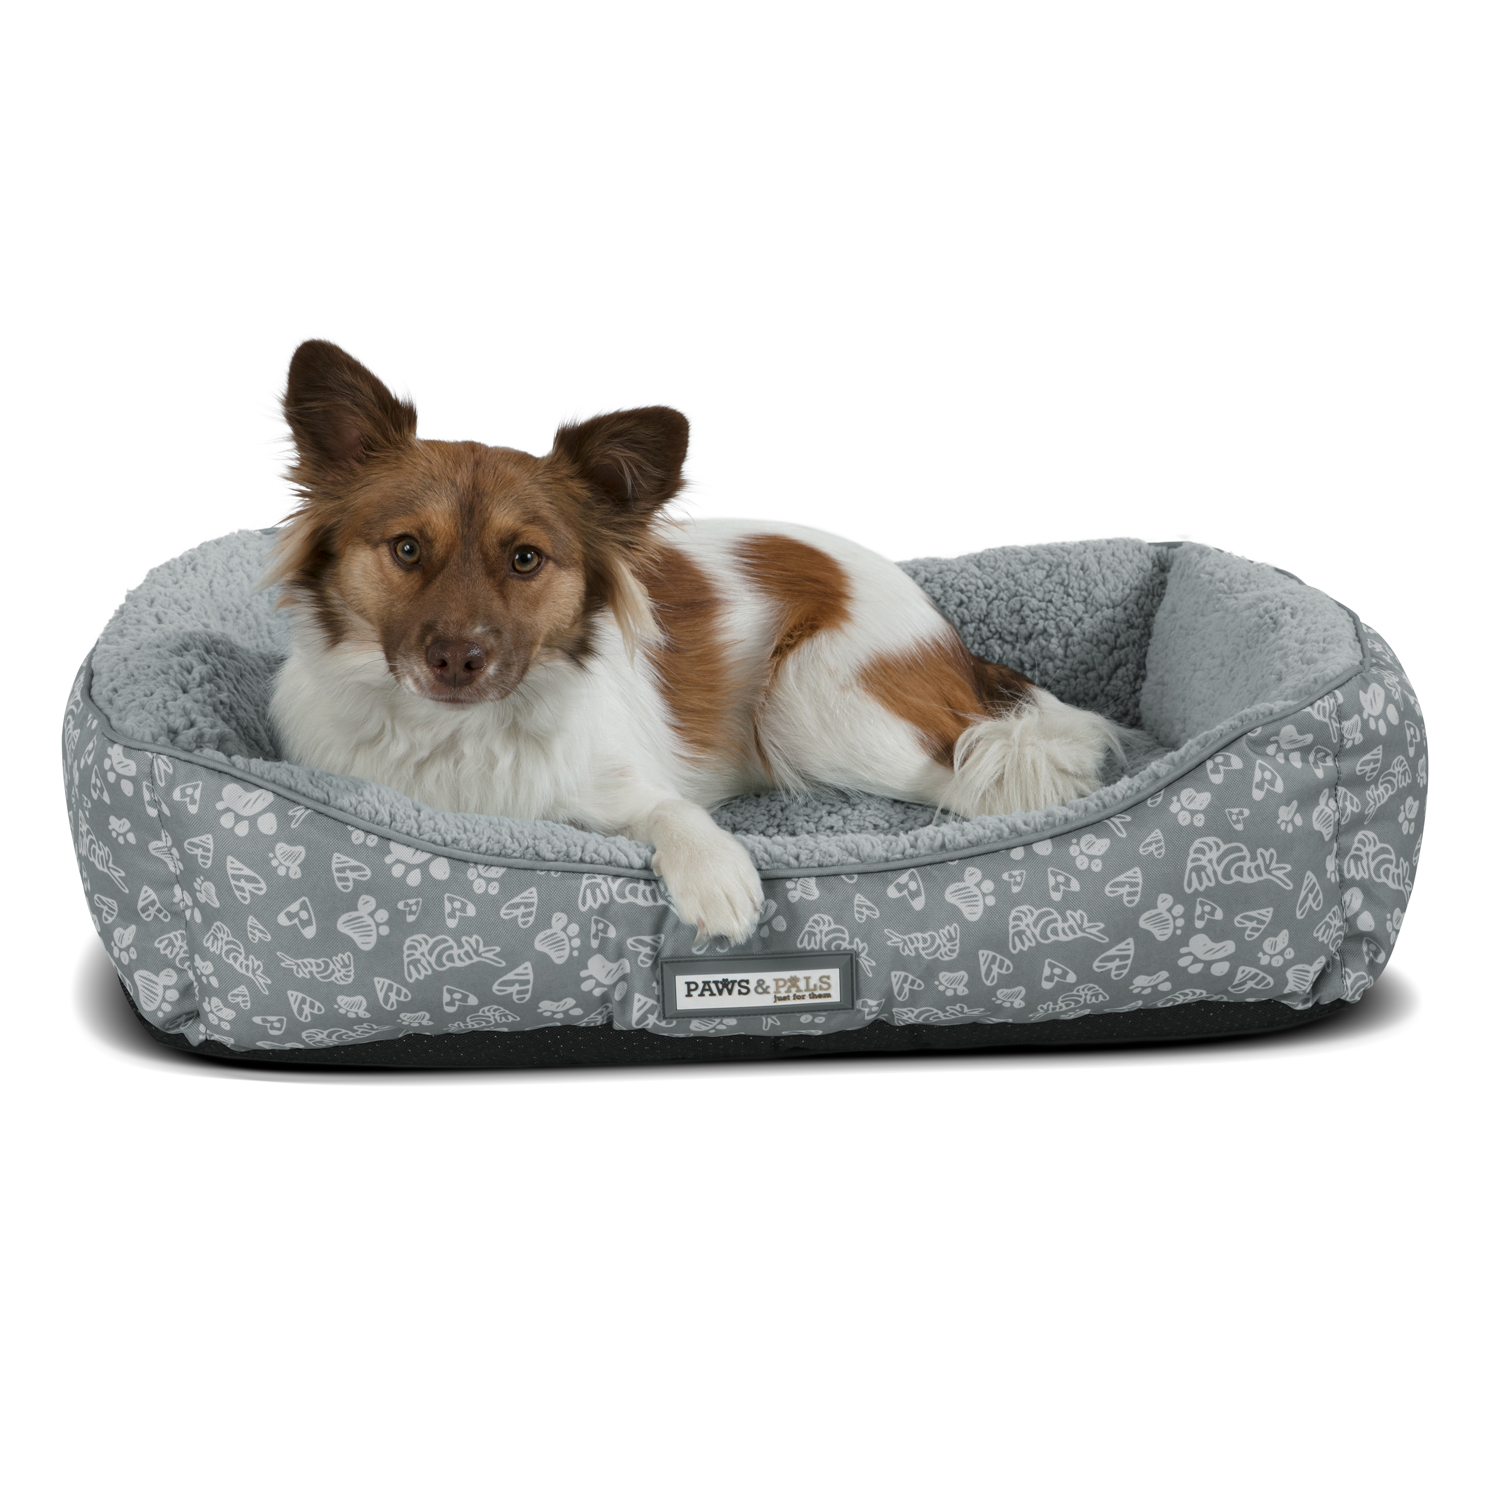 paws-and-pals-signature-dog-bed-heated